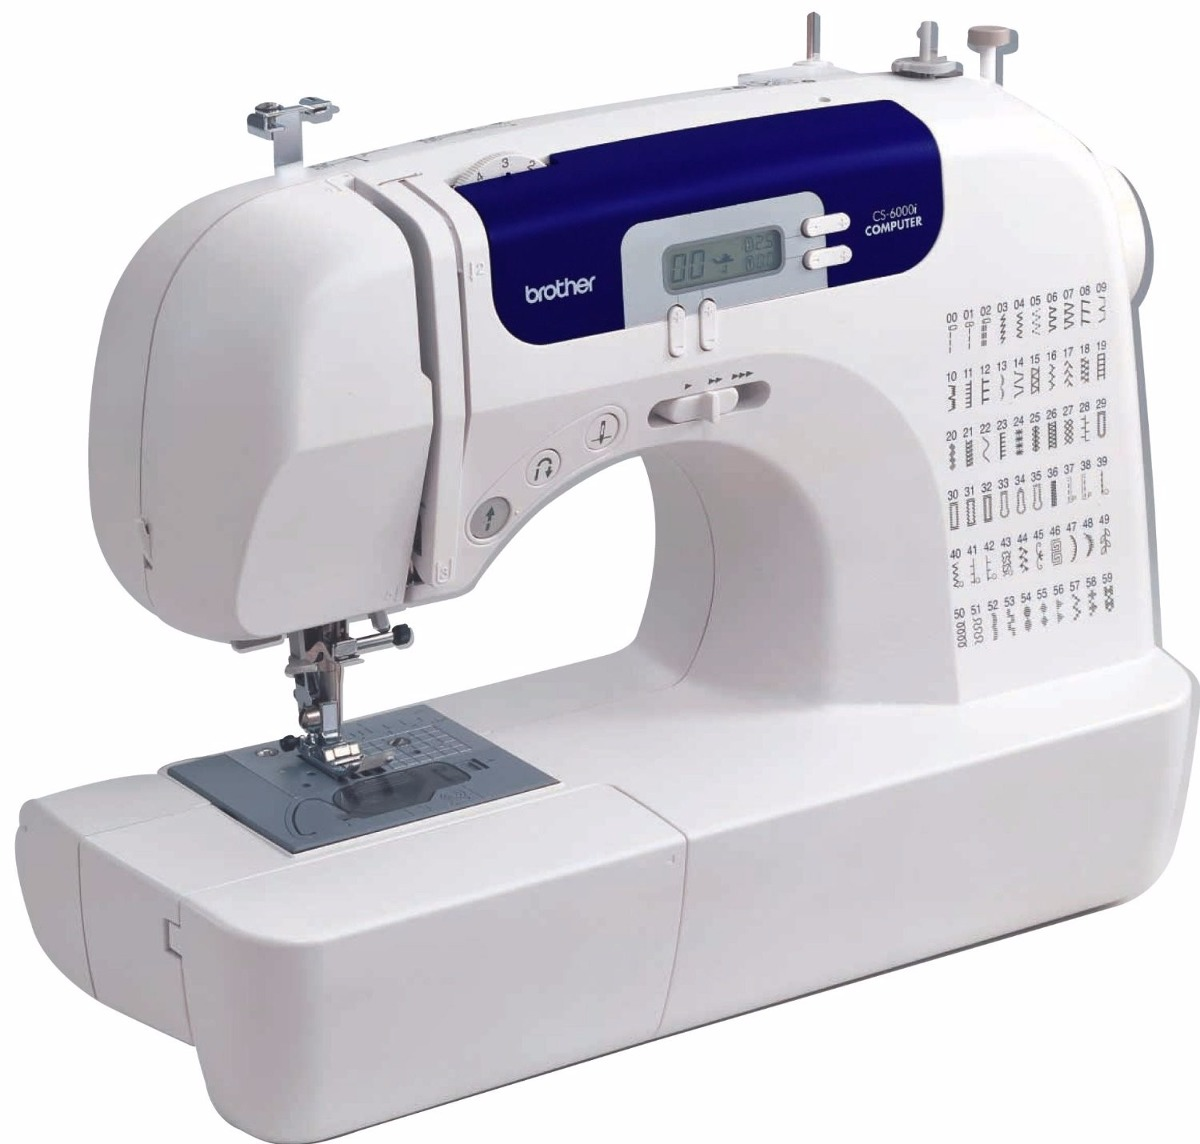 Maquina De Coser Brother Cs6000i Con Tabla - Envio Gratis